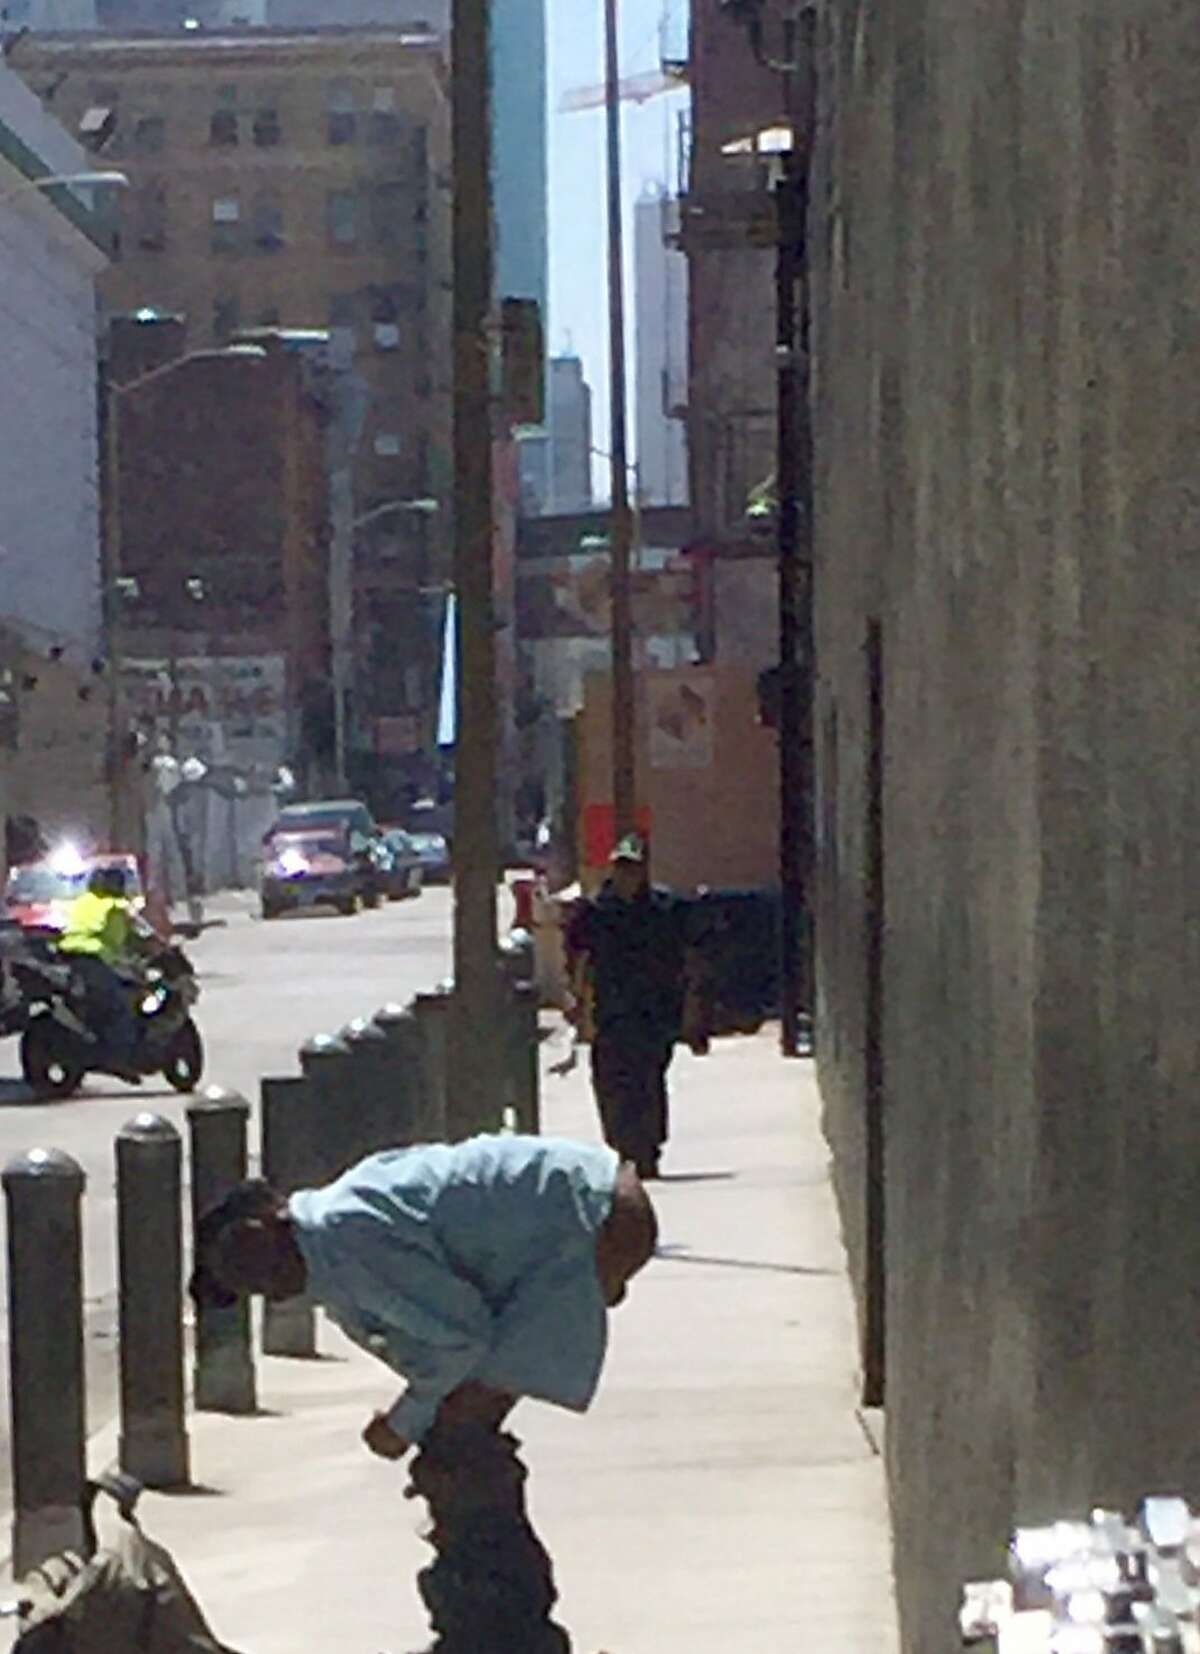 An unidentified man stops to defecate in the Stevenson St. alley behind Nordstrom Rack at 5th and Market Streets on Aug. 17.